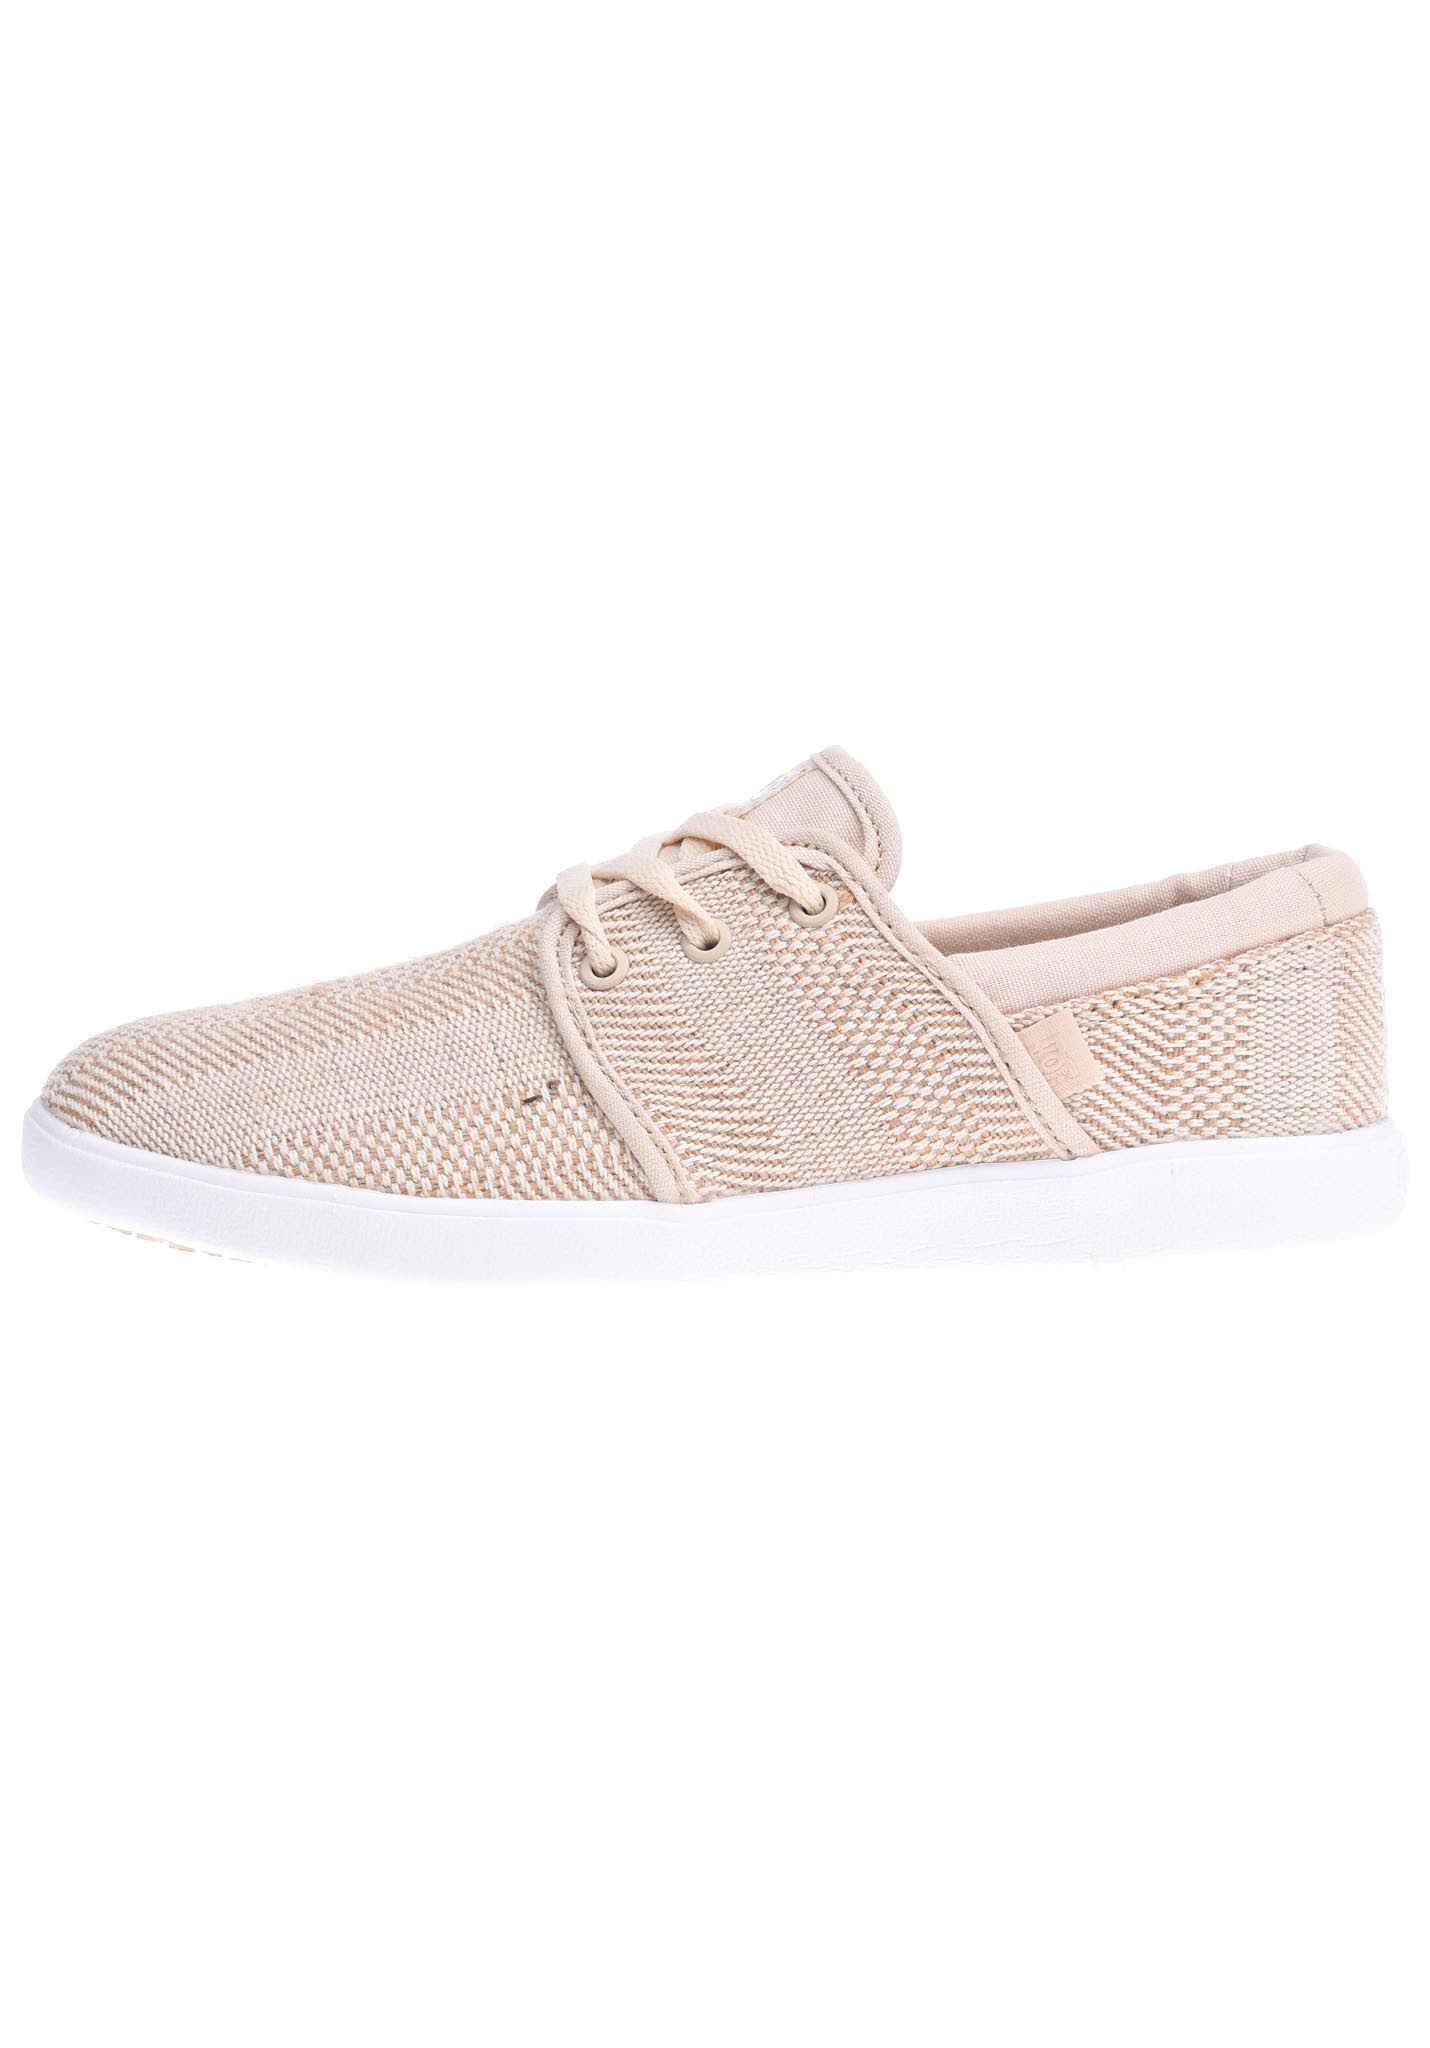 aecefabe DC Haven TX SE - Zapatos de moda para Mujeres - Beige - Planet Sports